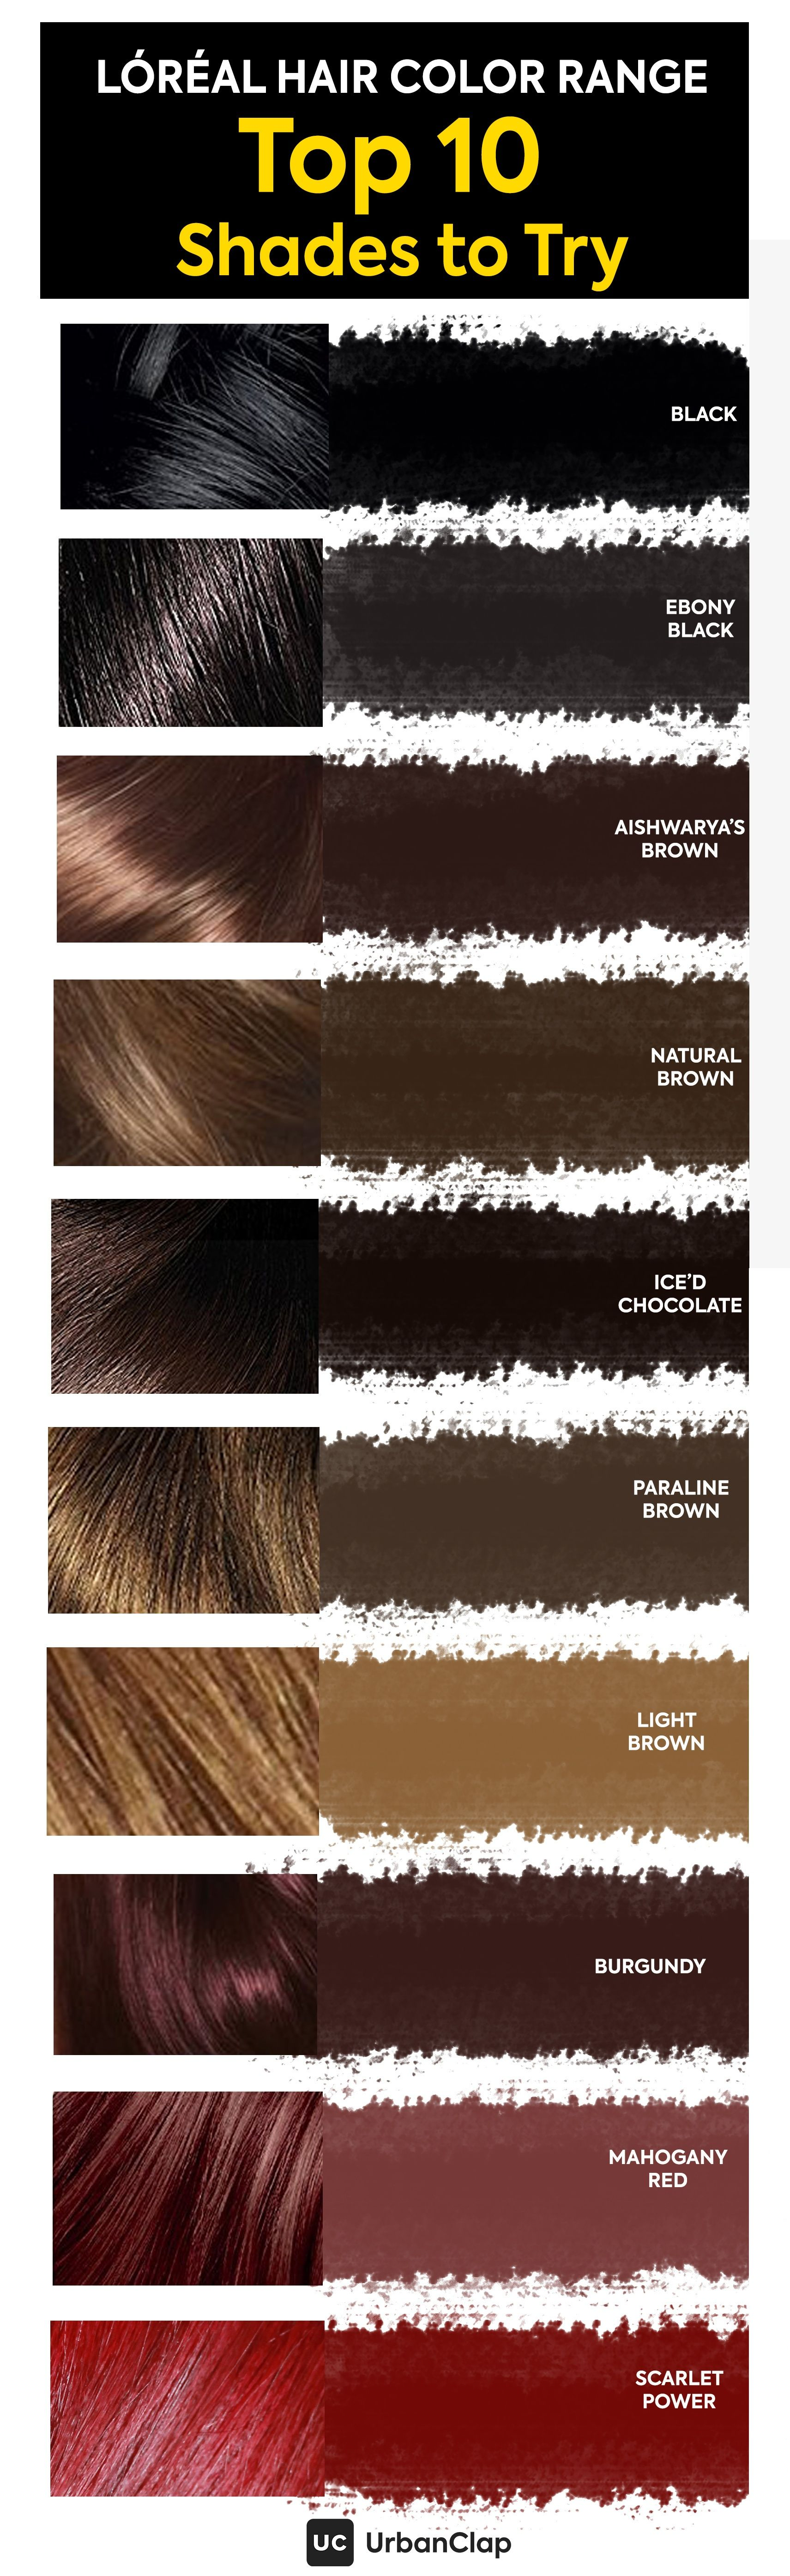 40 Shades Of Brown Hair Color Chart To Suit Any Complexion In 2020 Brown Hair Color Chart Hair Color Chart Brown Hair Shades